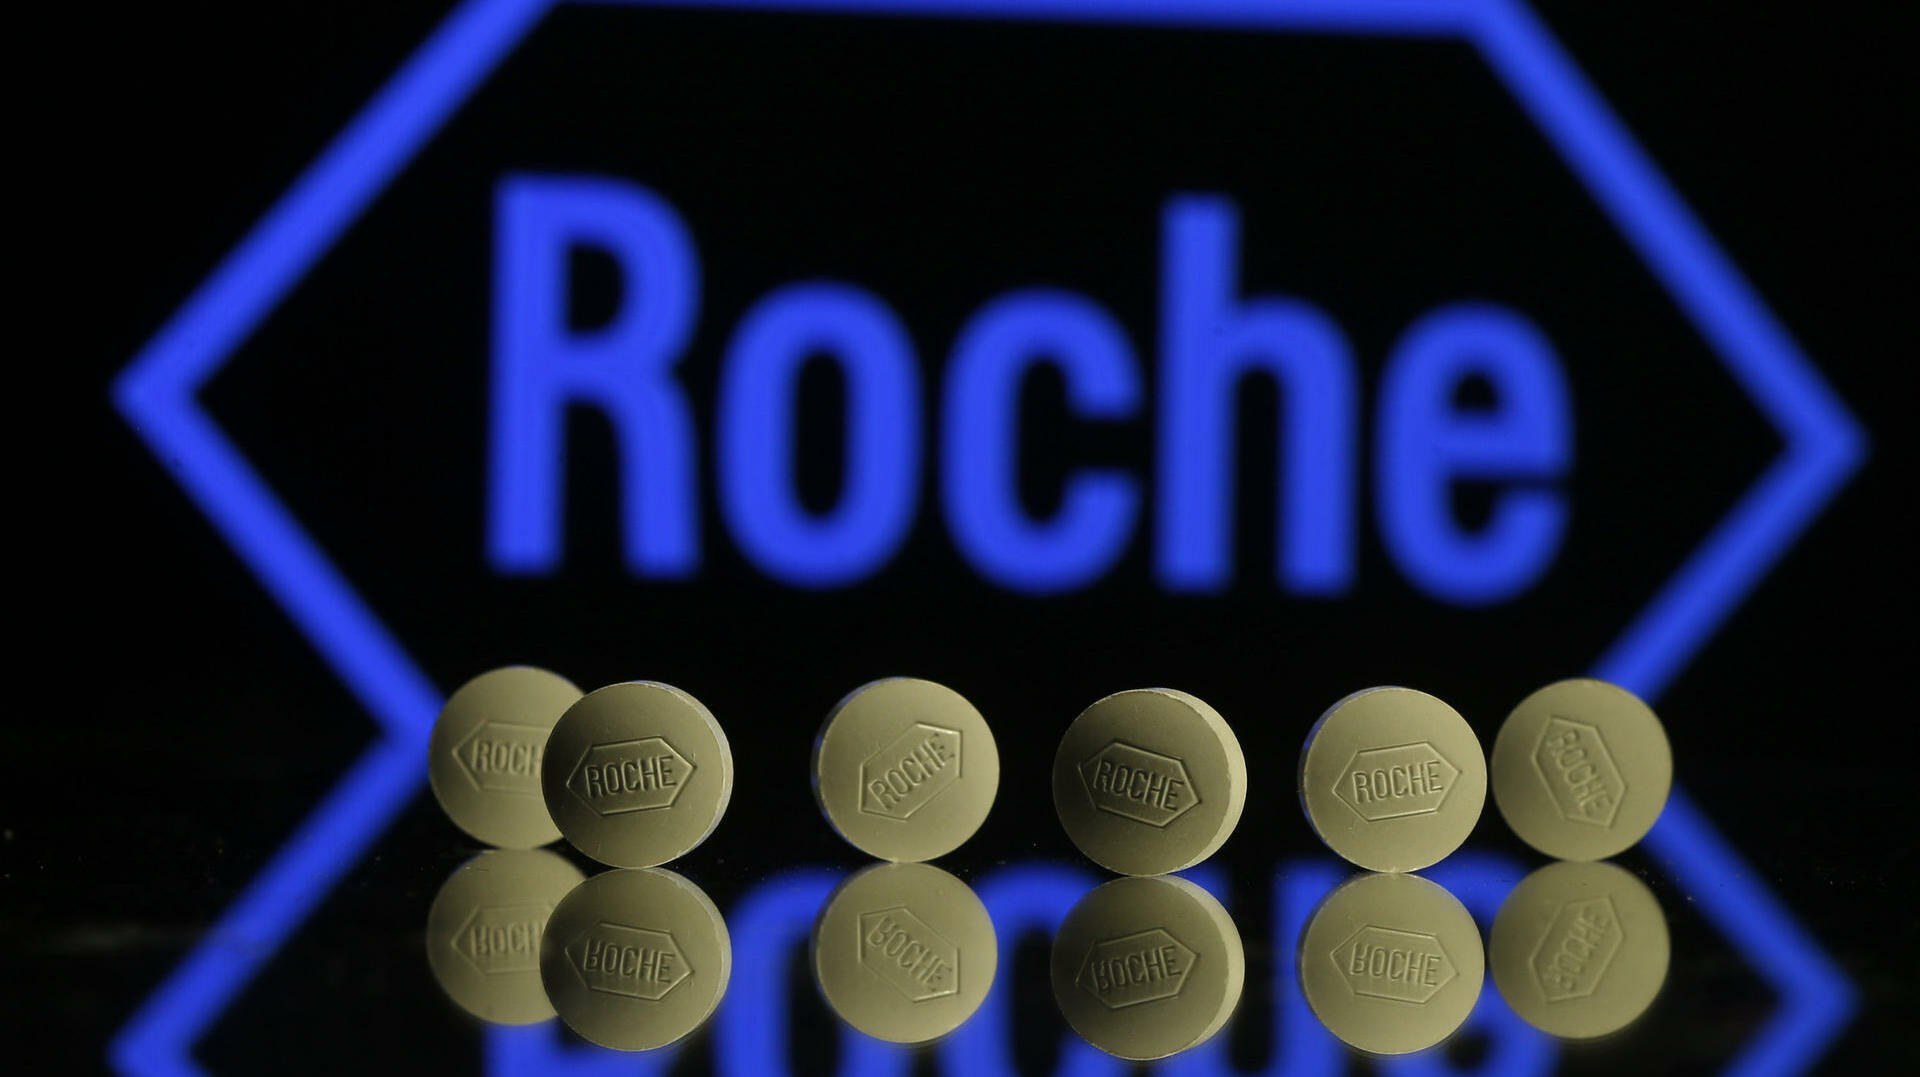 Roche Quelle: REUTERS